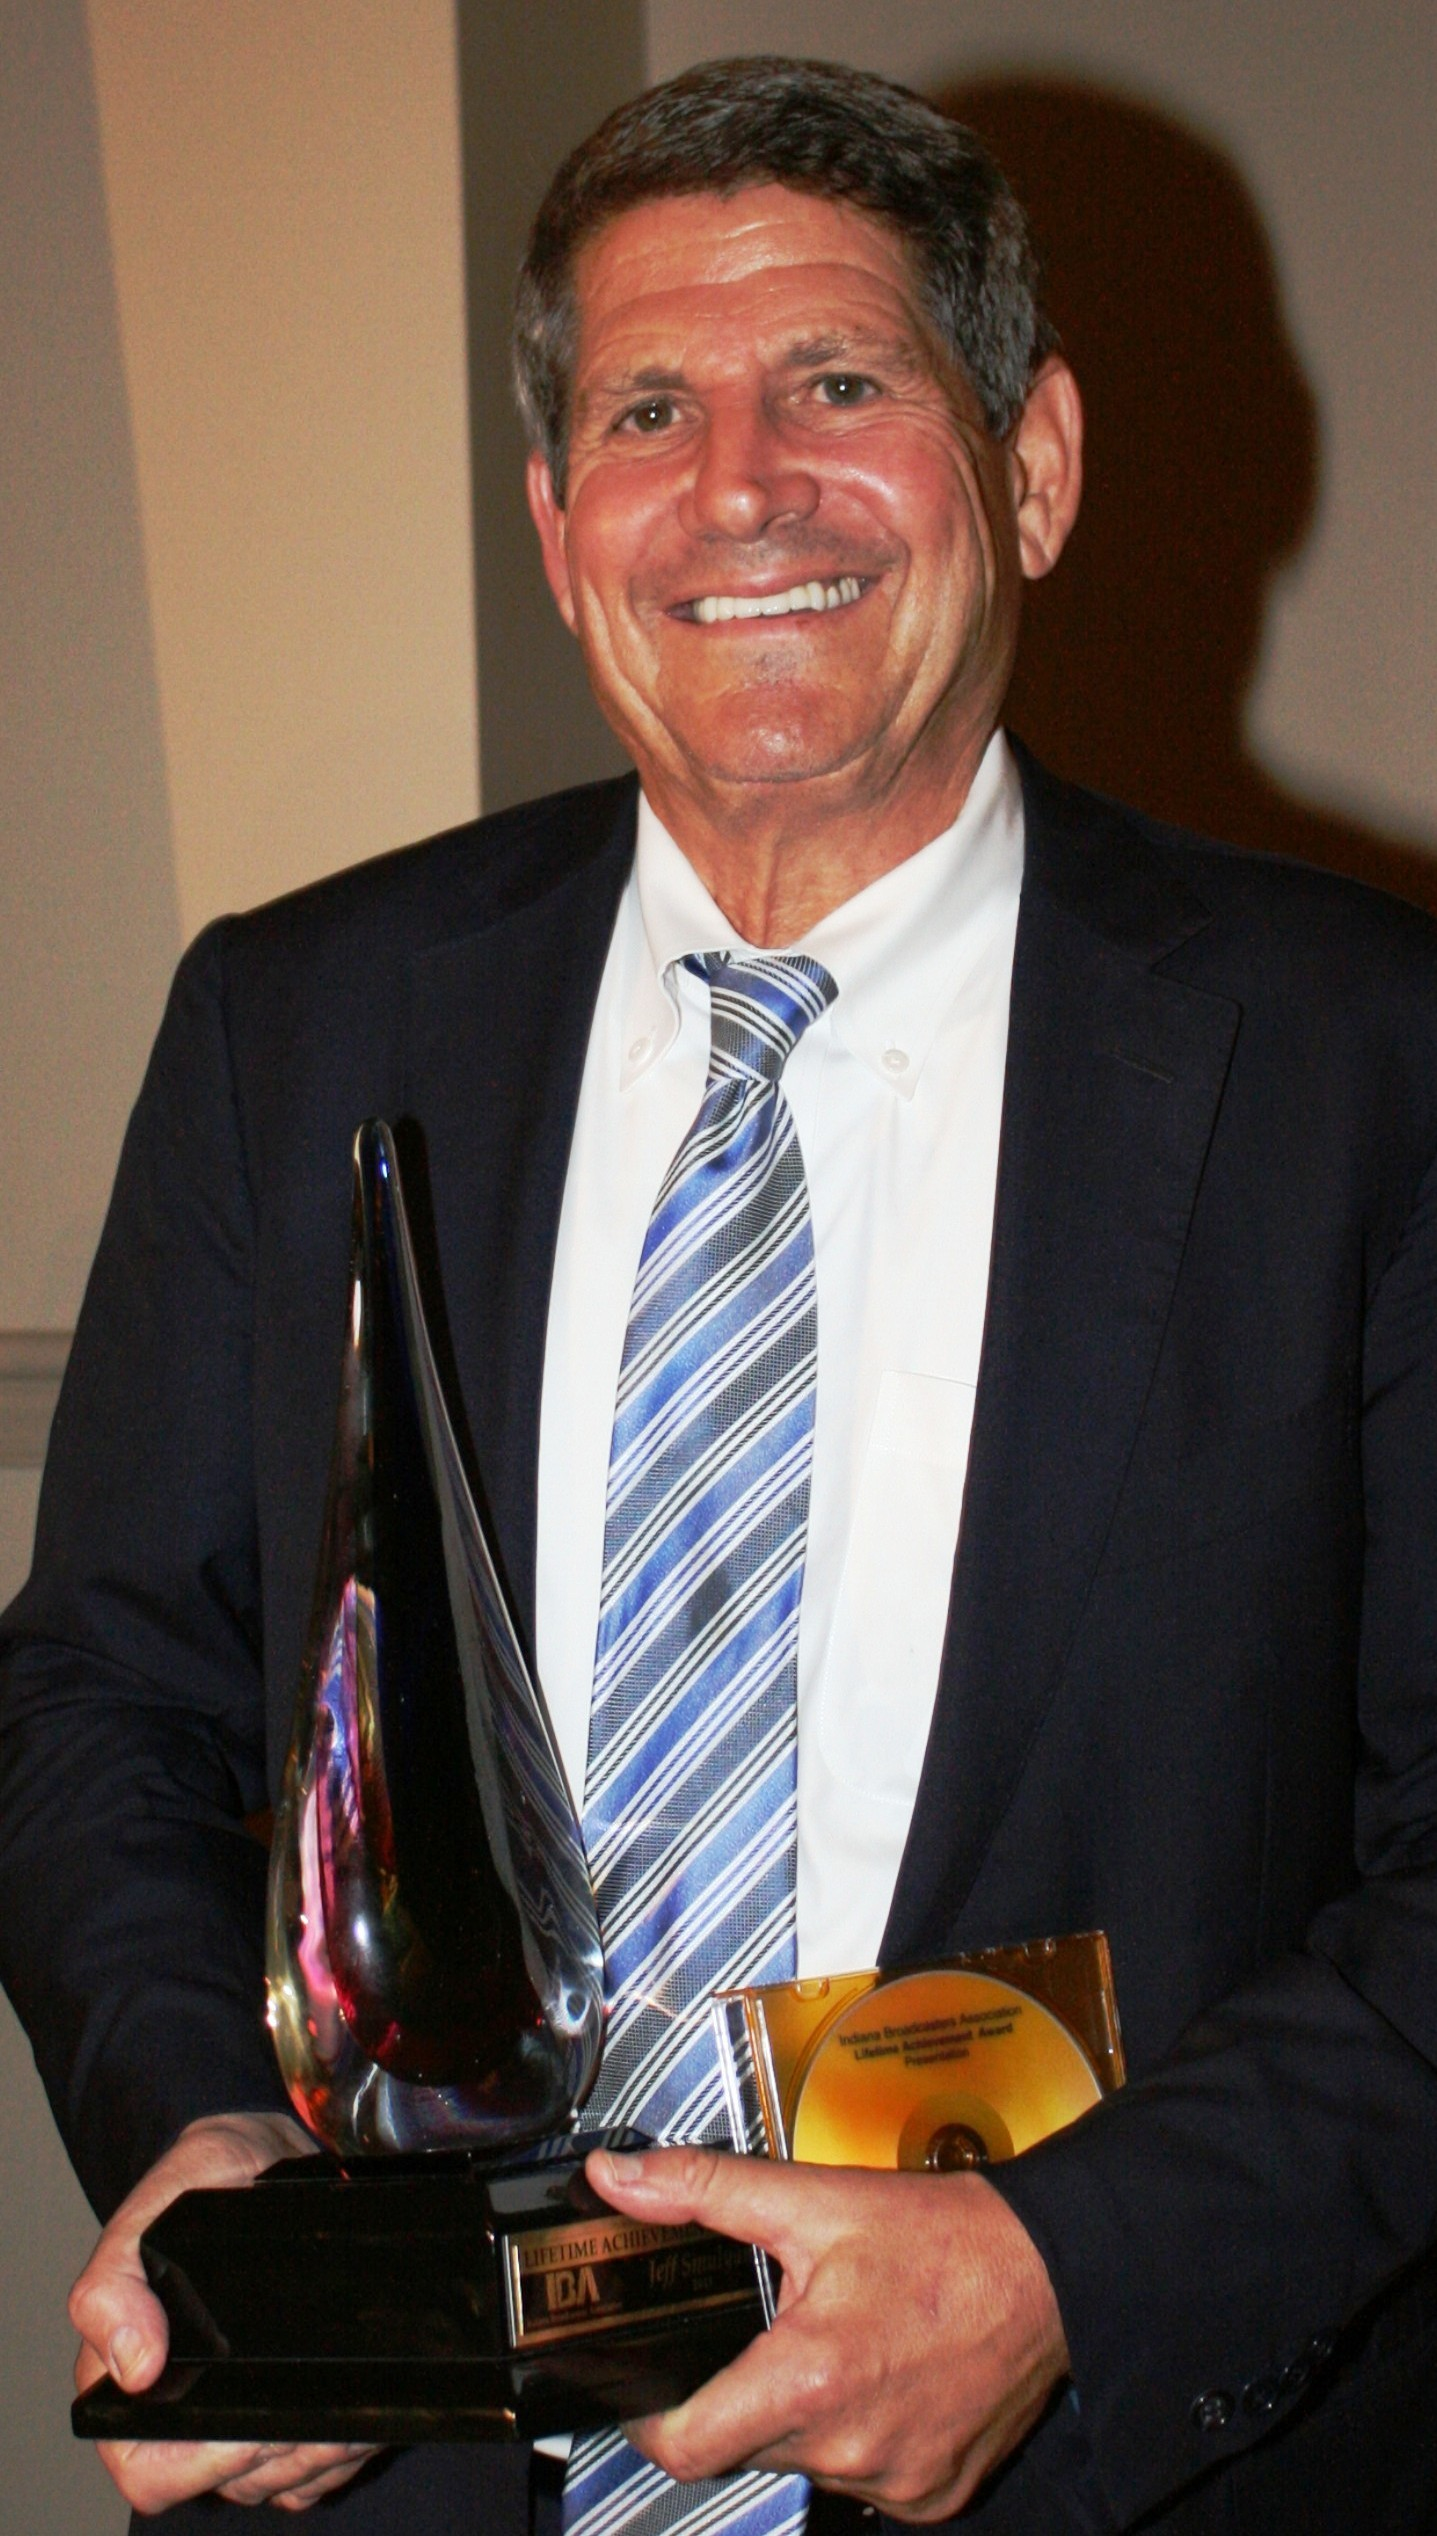 Jeff Smulytan Accepts Award